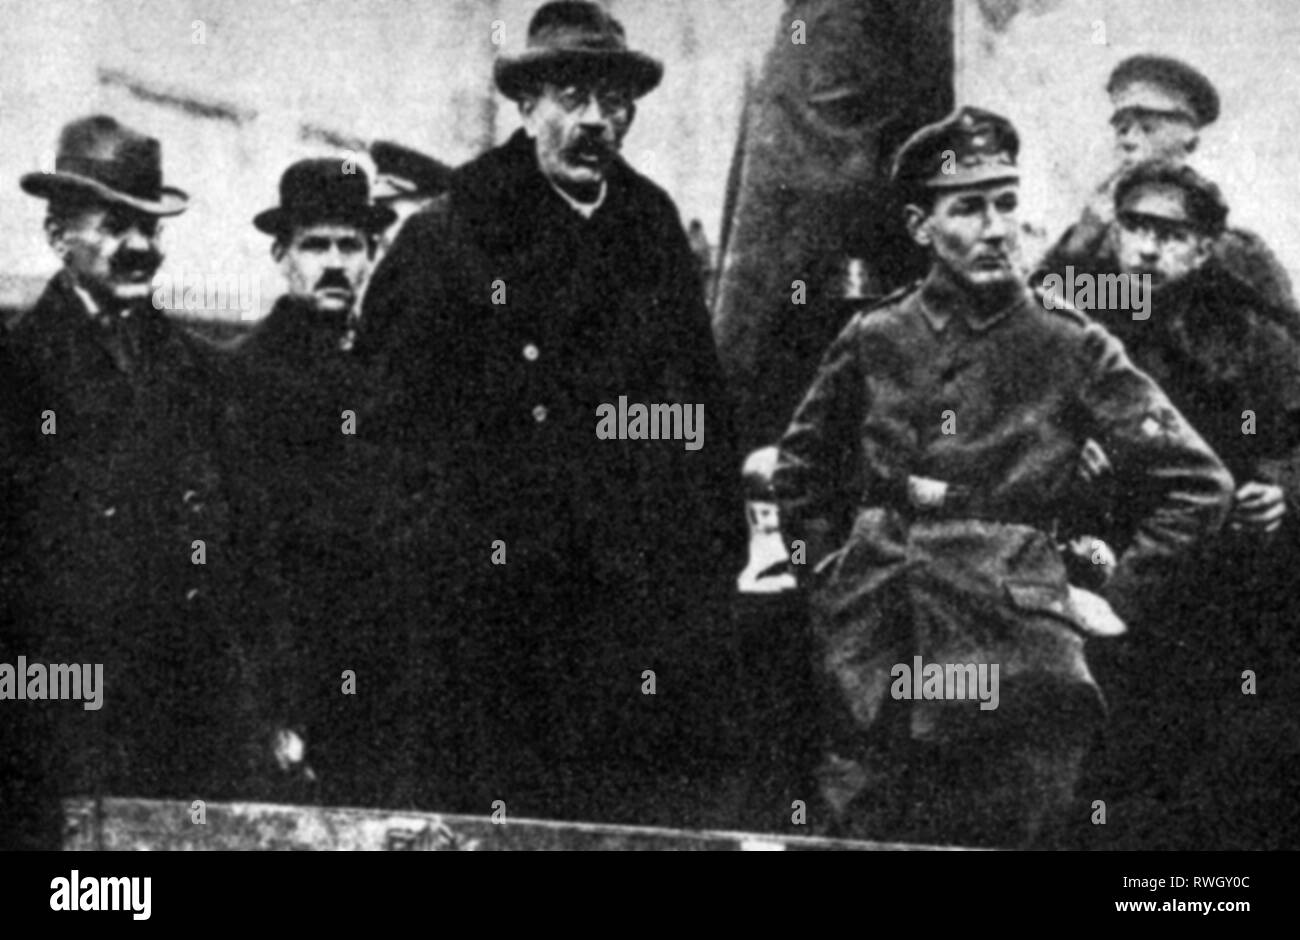 Noske, Gustav, 9.7.1868 - 30.11.1946, German politician (Social Democratic Party of Germany (SPD)), half-length, as People's Deputy for army and navy, delivering speech, January 1919, Additional-Rights-Clearance-Info-Not-Available - Stock Image